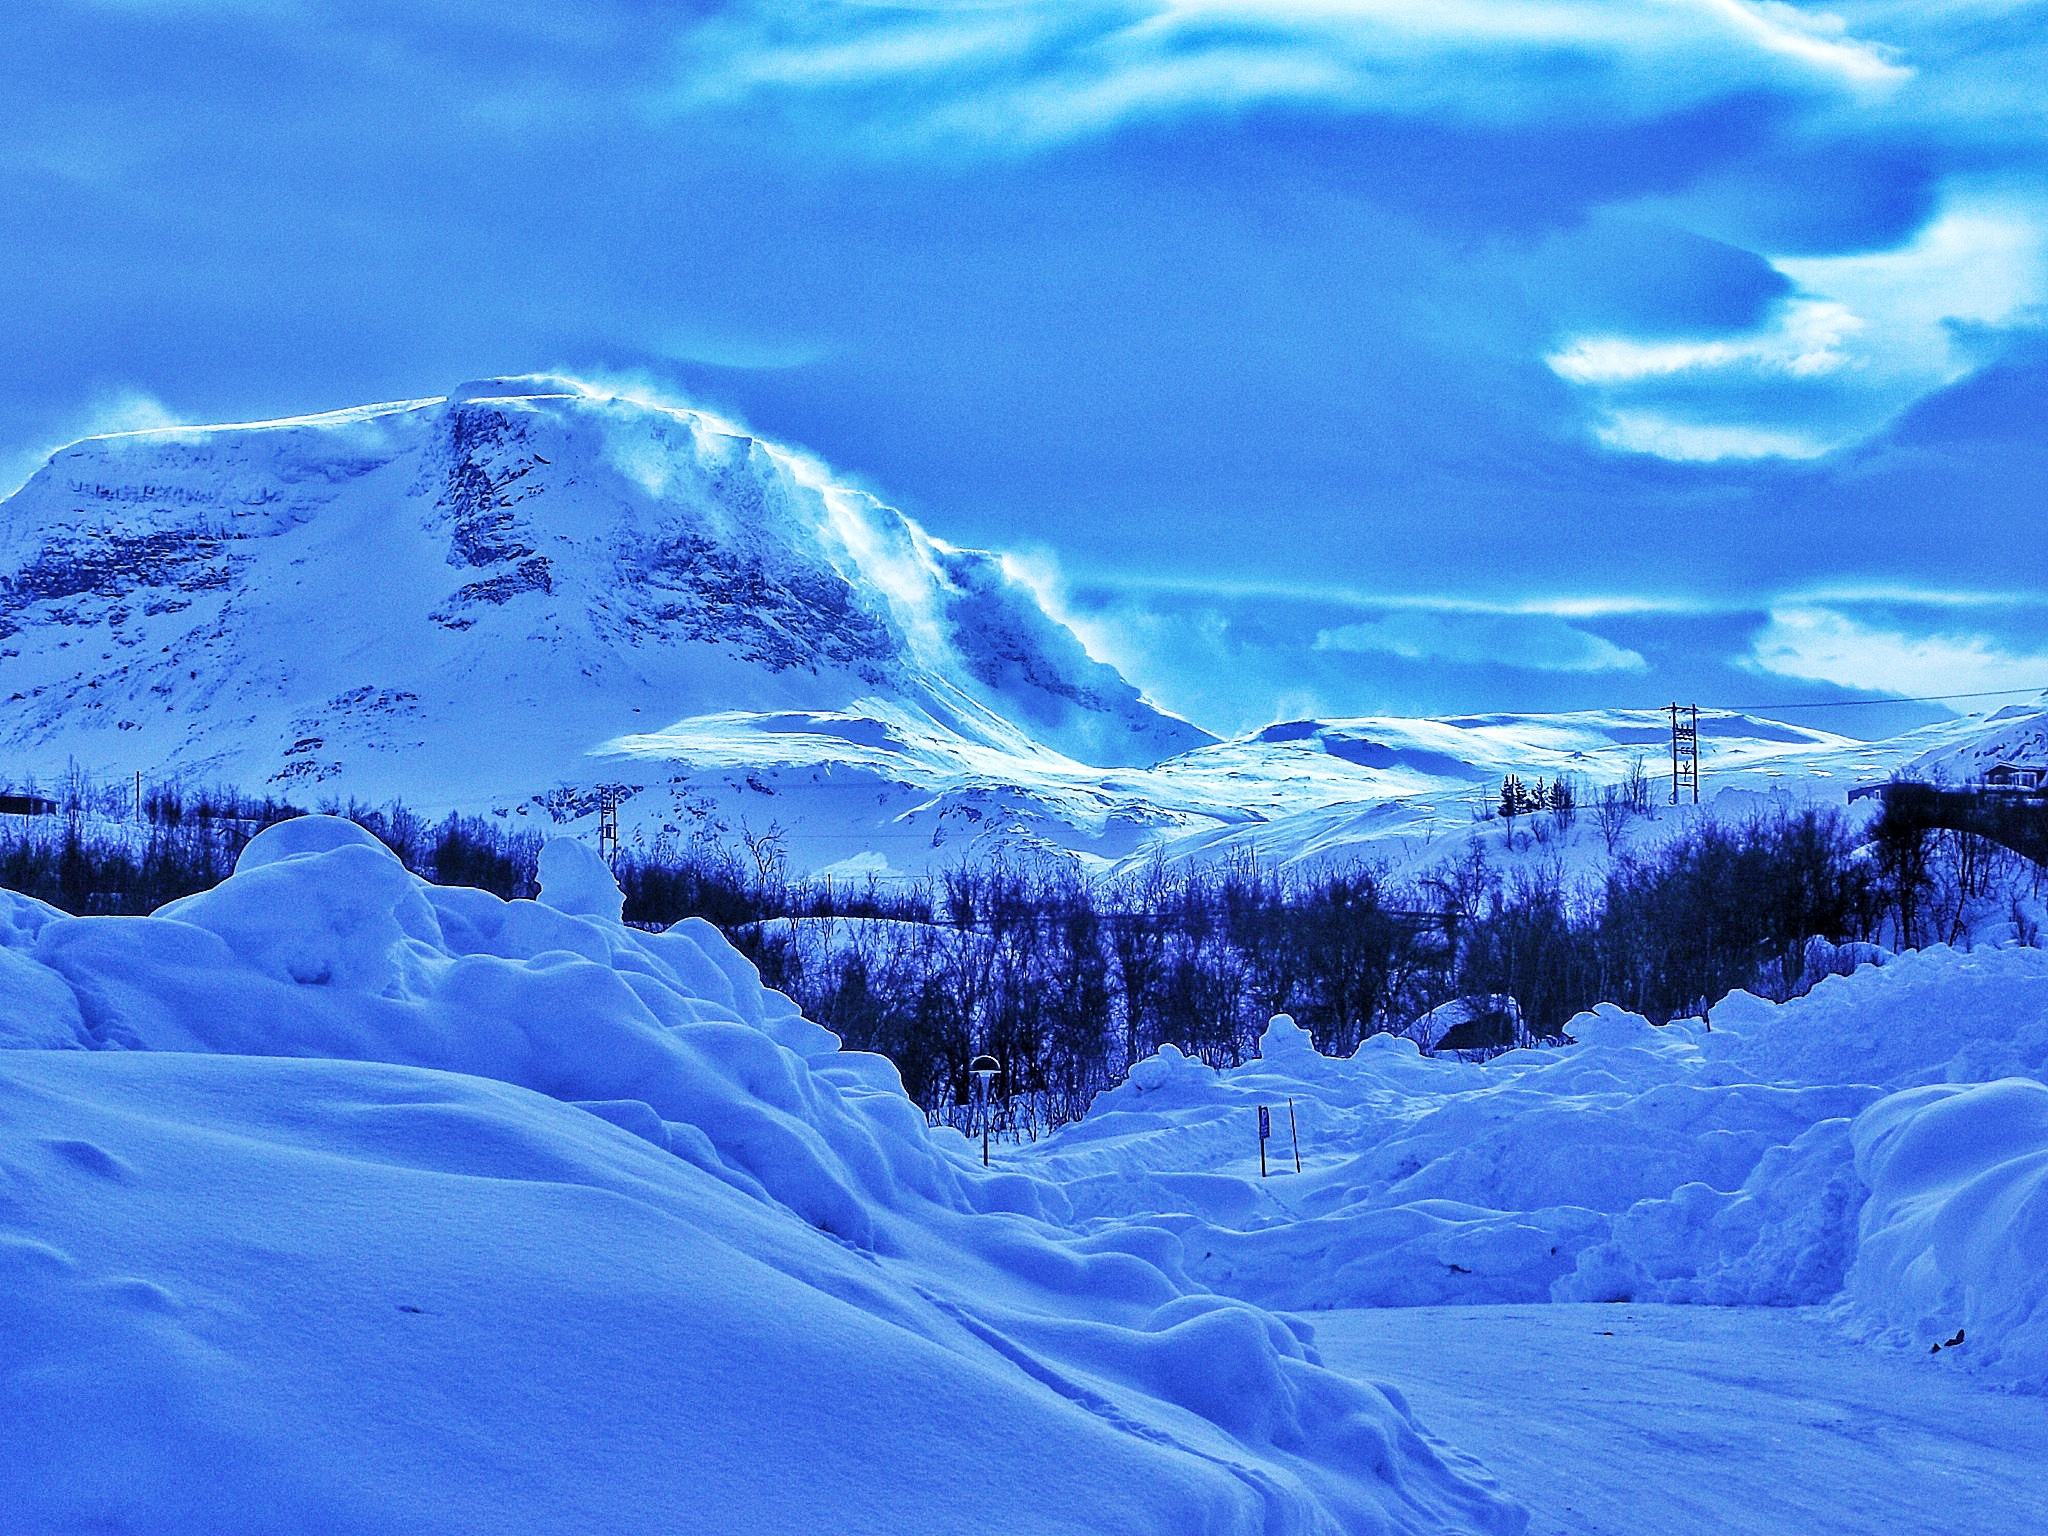 Mountains in Abisko. The blue hue was a beautiful optical effect